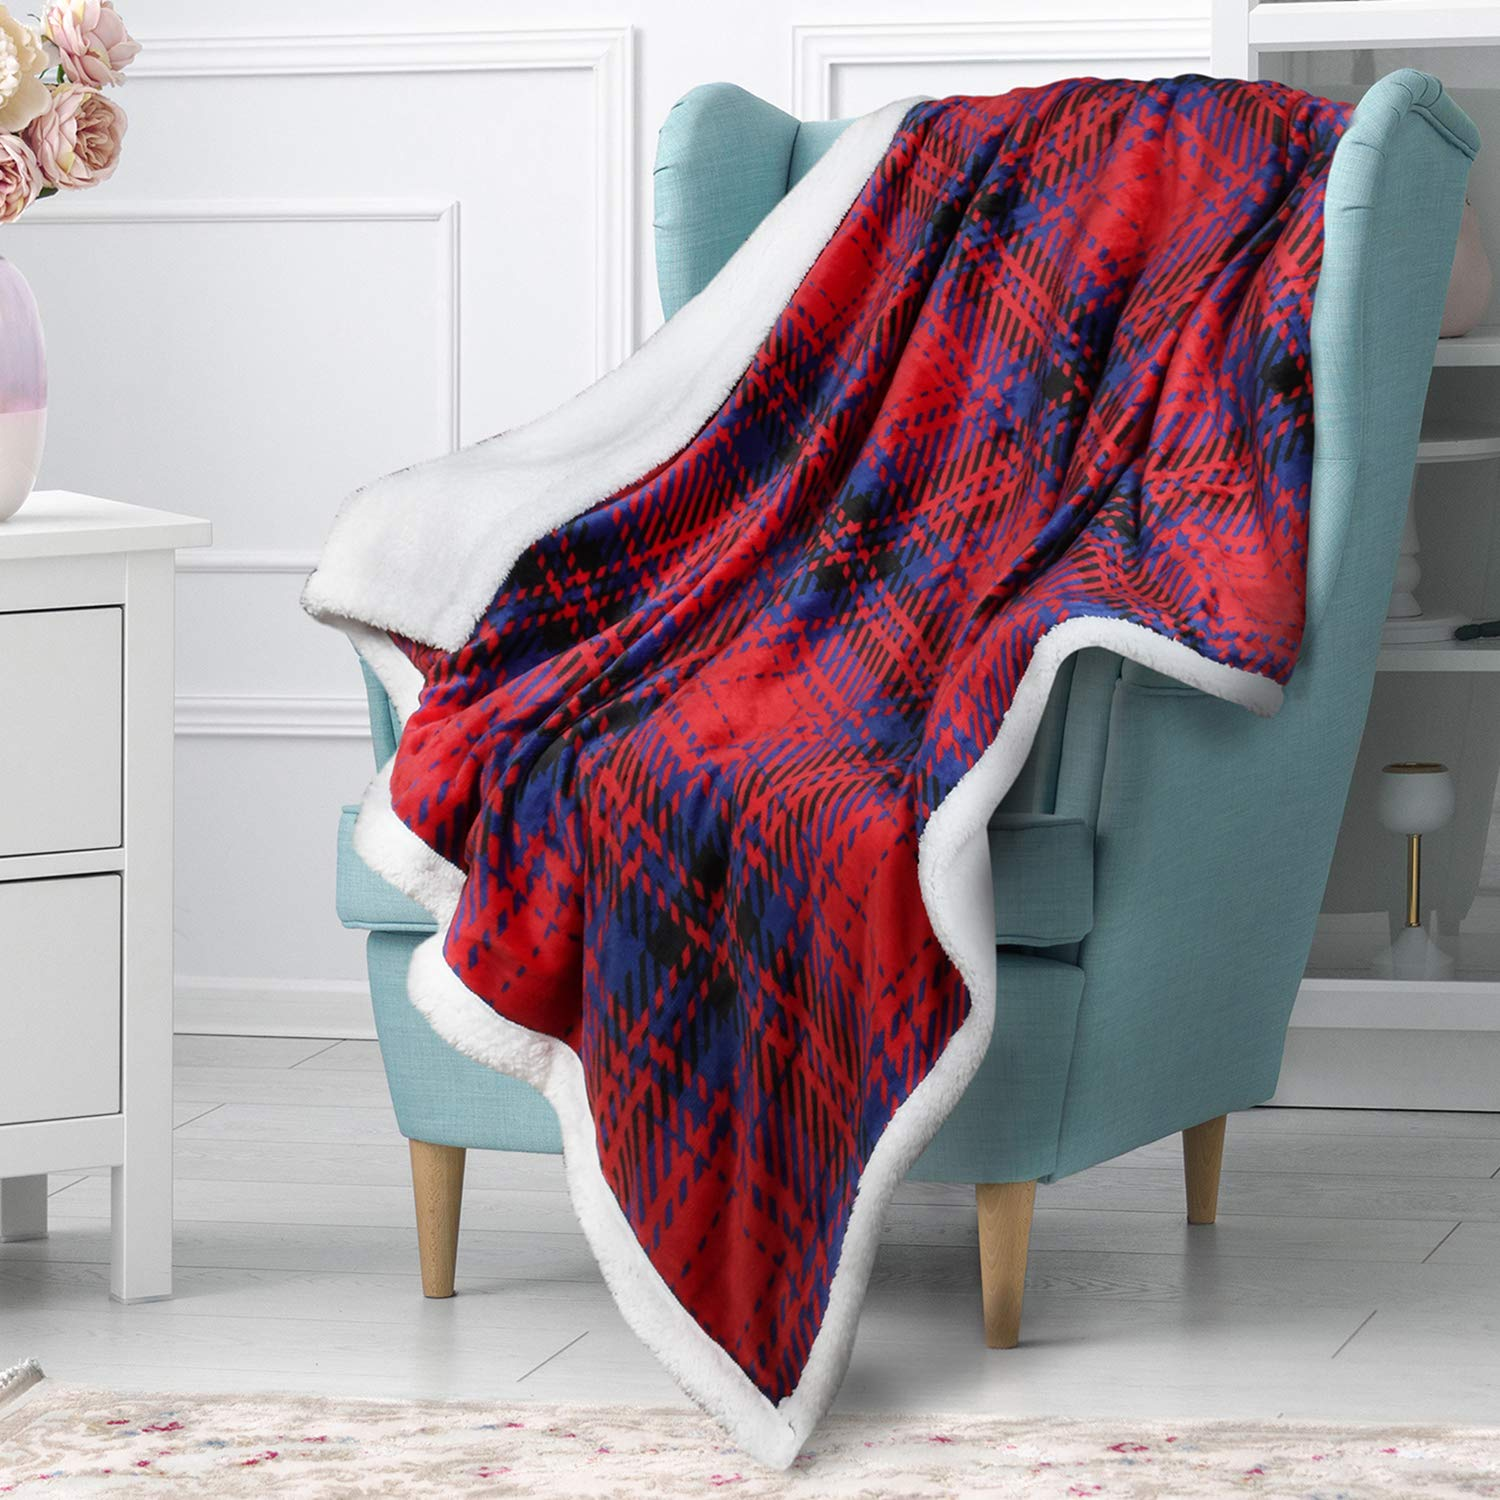 """Buffalo Plaid Sherpa Fleece Blanket, Super Soft Warm Cozy Reversible Fuzzy Checkered Blanket 50"""" x 60"""" for Couch Sofa Bed, Lightweight Red Blue Throw"""